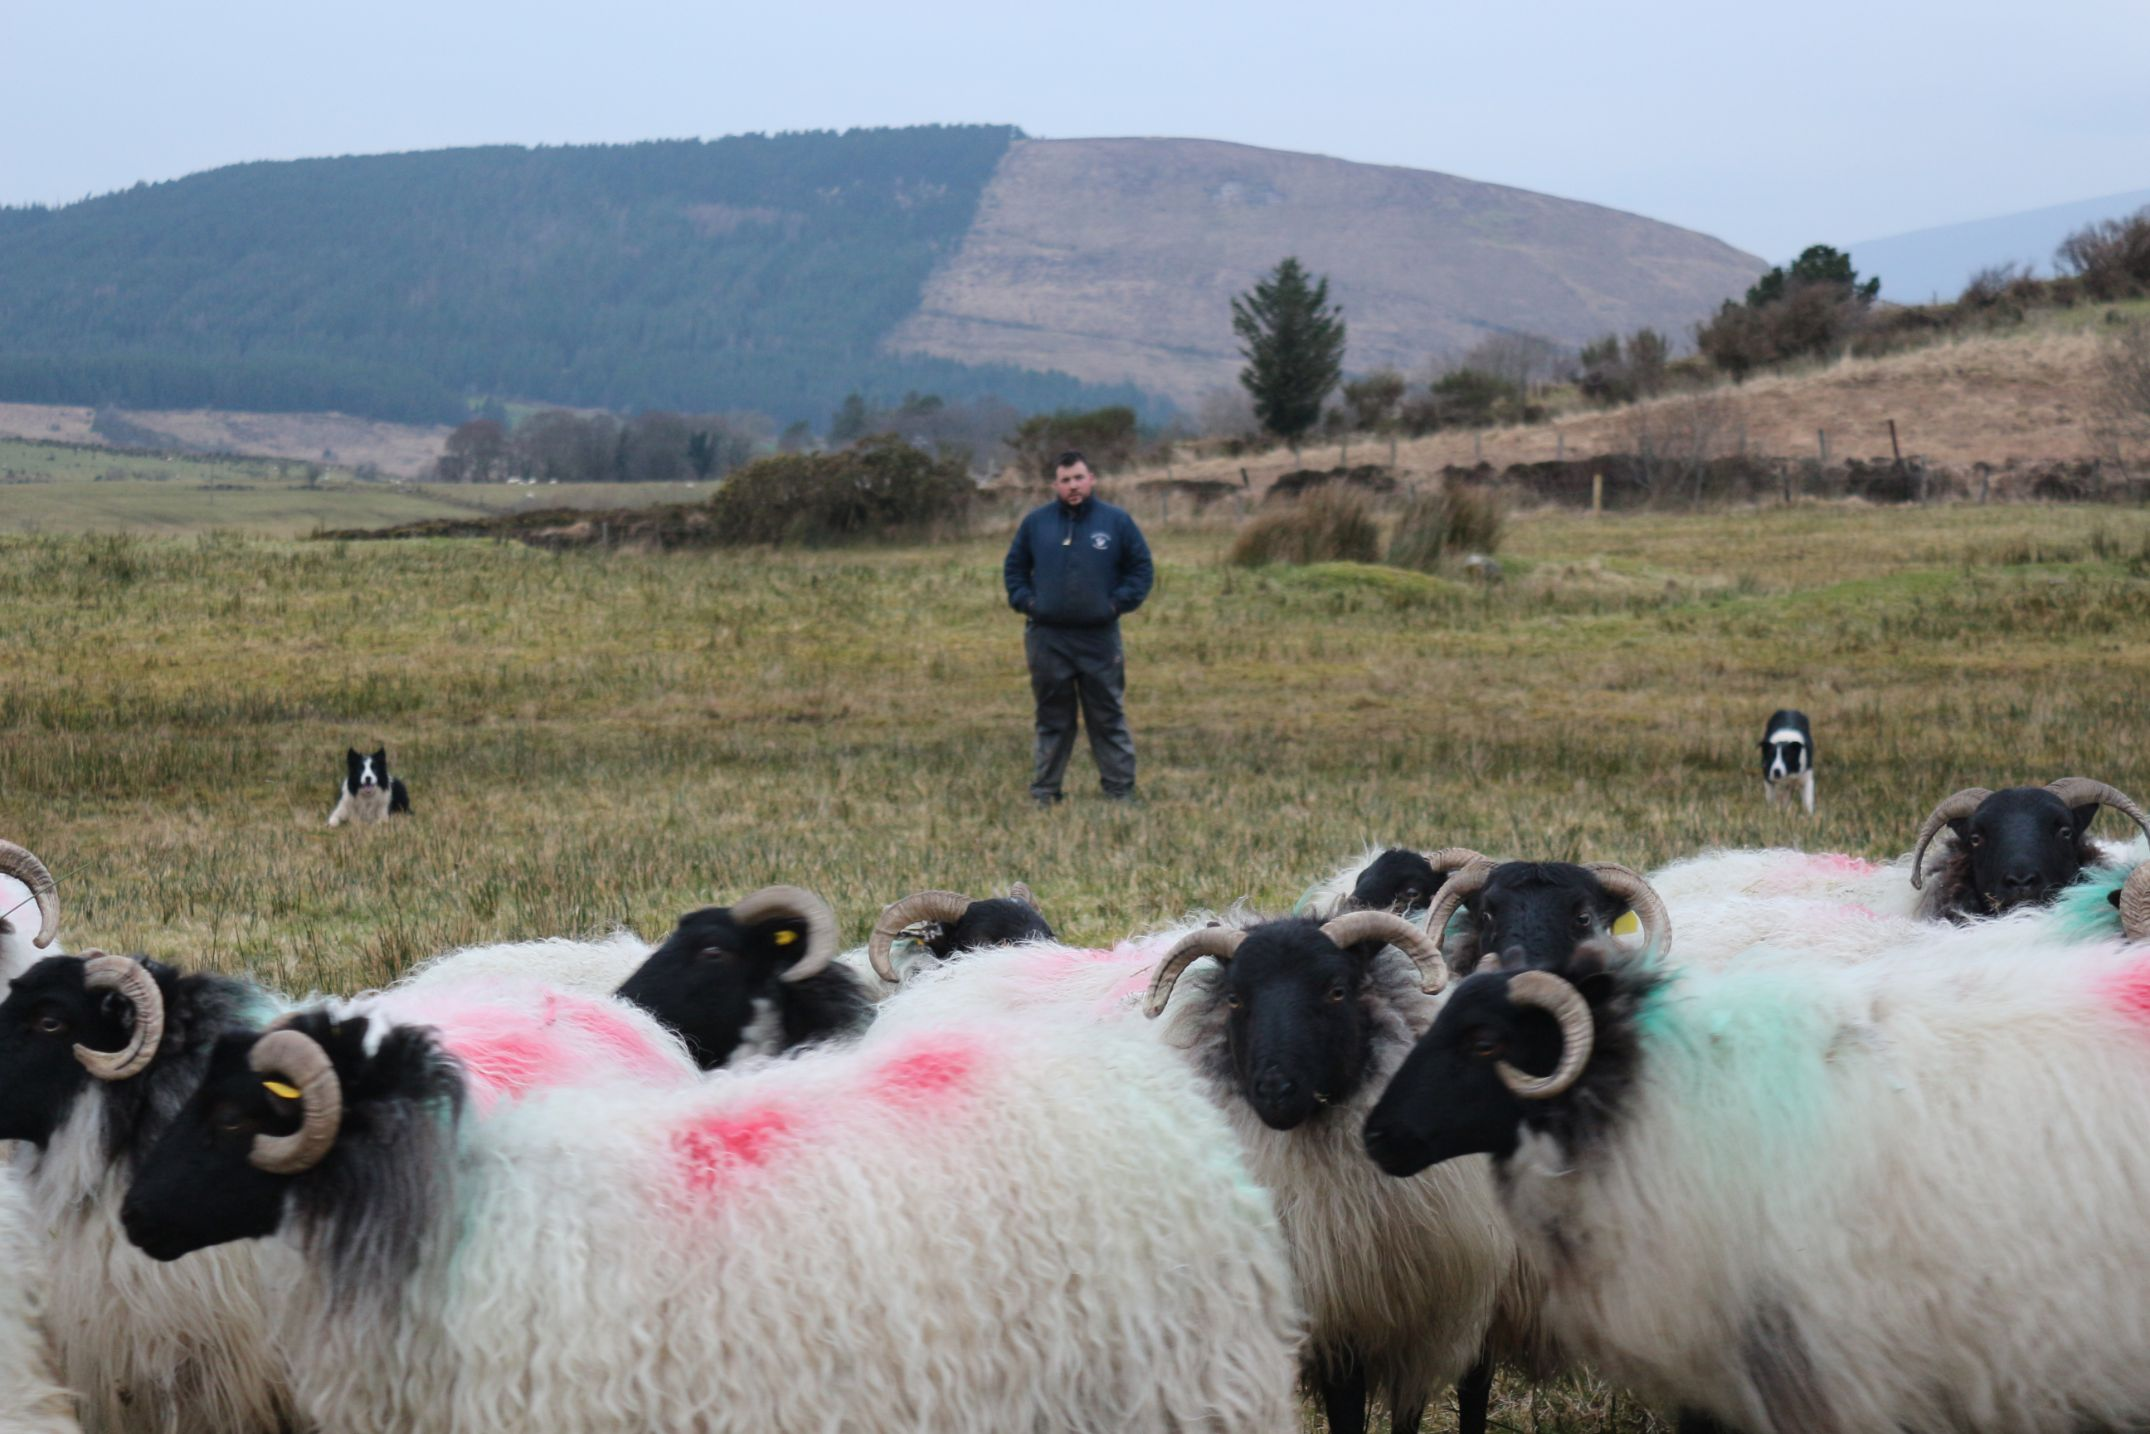 Derryharriff Sheepdogs, sheep, sheep farming, sheep farmer